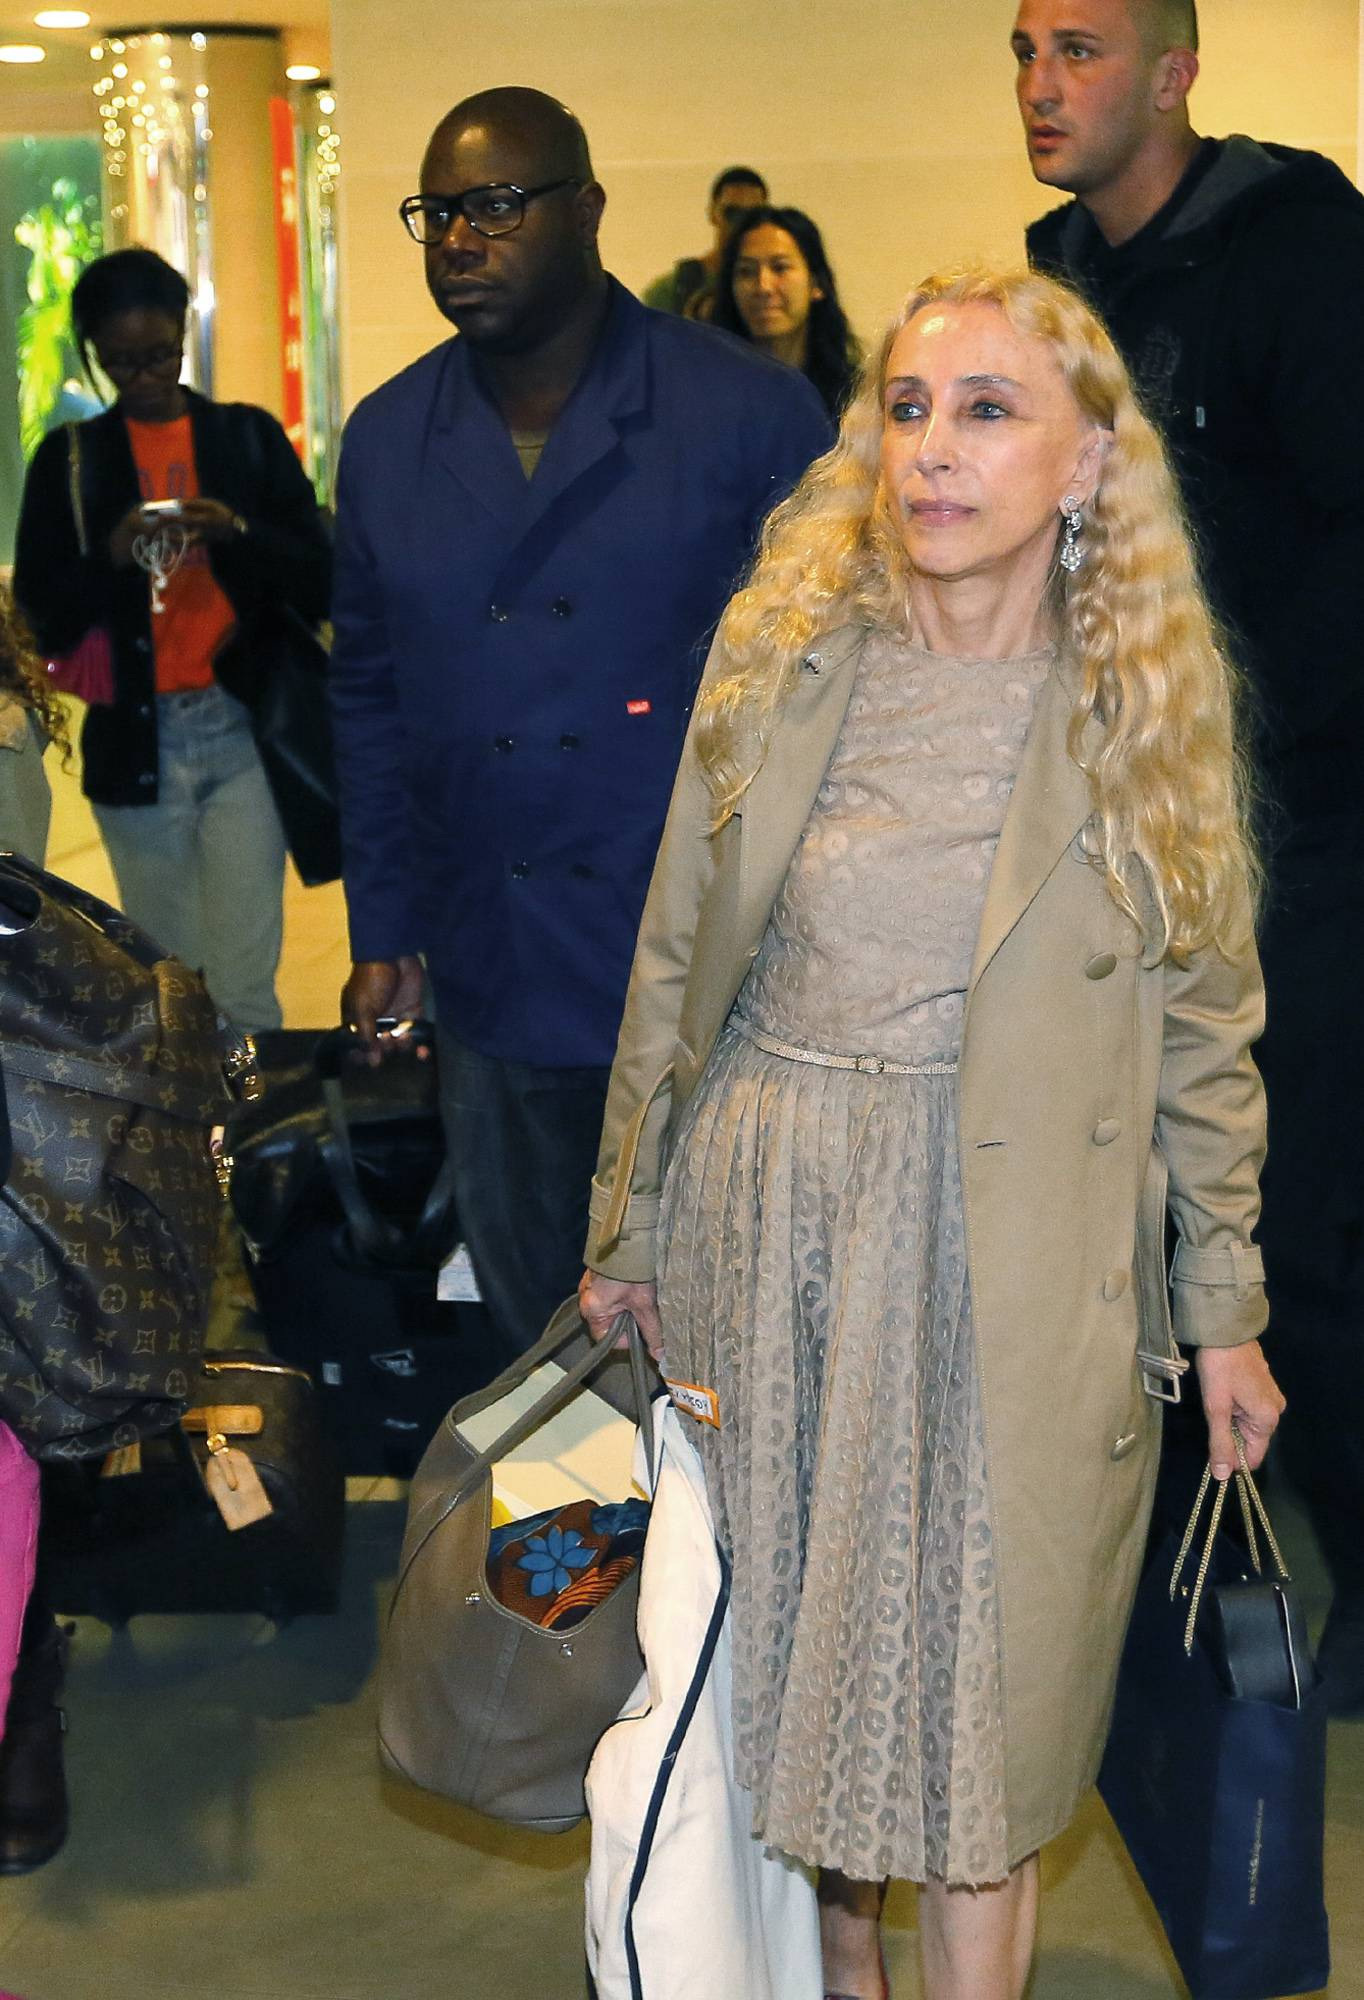 British film director and producer Steve McQueen, left, and Italian journalist and the editor-in-chief of Vogue Italia Franca Sozzani, right, foreground, arrive in Florence, Italy, Saturday, May 24, 2014. Kim Kardashian and Kanye West will wed and host a reception at Florence's imposing 16th-century Belvedere Fort on May 24, according to a spokeswoman at the Florence mayor's office. The couple rented the fort, located next to Florence's famed Boboli Gardens, for $410,000 and a Protestant minister will preside over the ceremony. Belvedere Fort was built in 1590, believed using plans by Don Giovanni de' Medici. Located near the Arno River, it offers a panoramic view of Florence and the surrounding Tuscan hills.